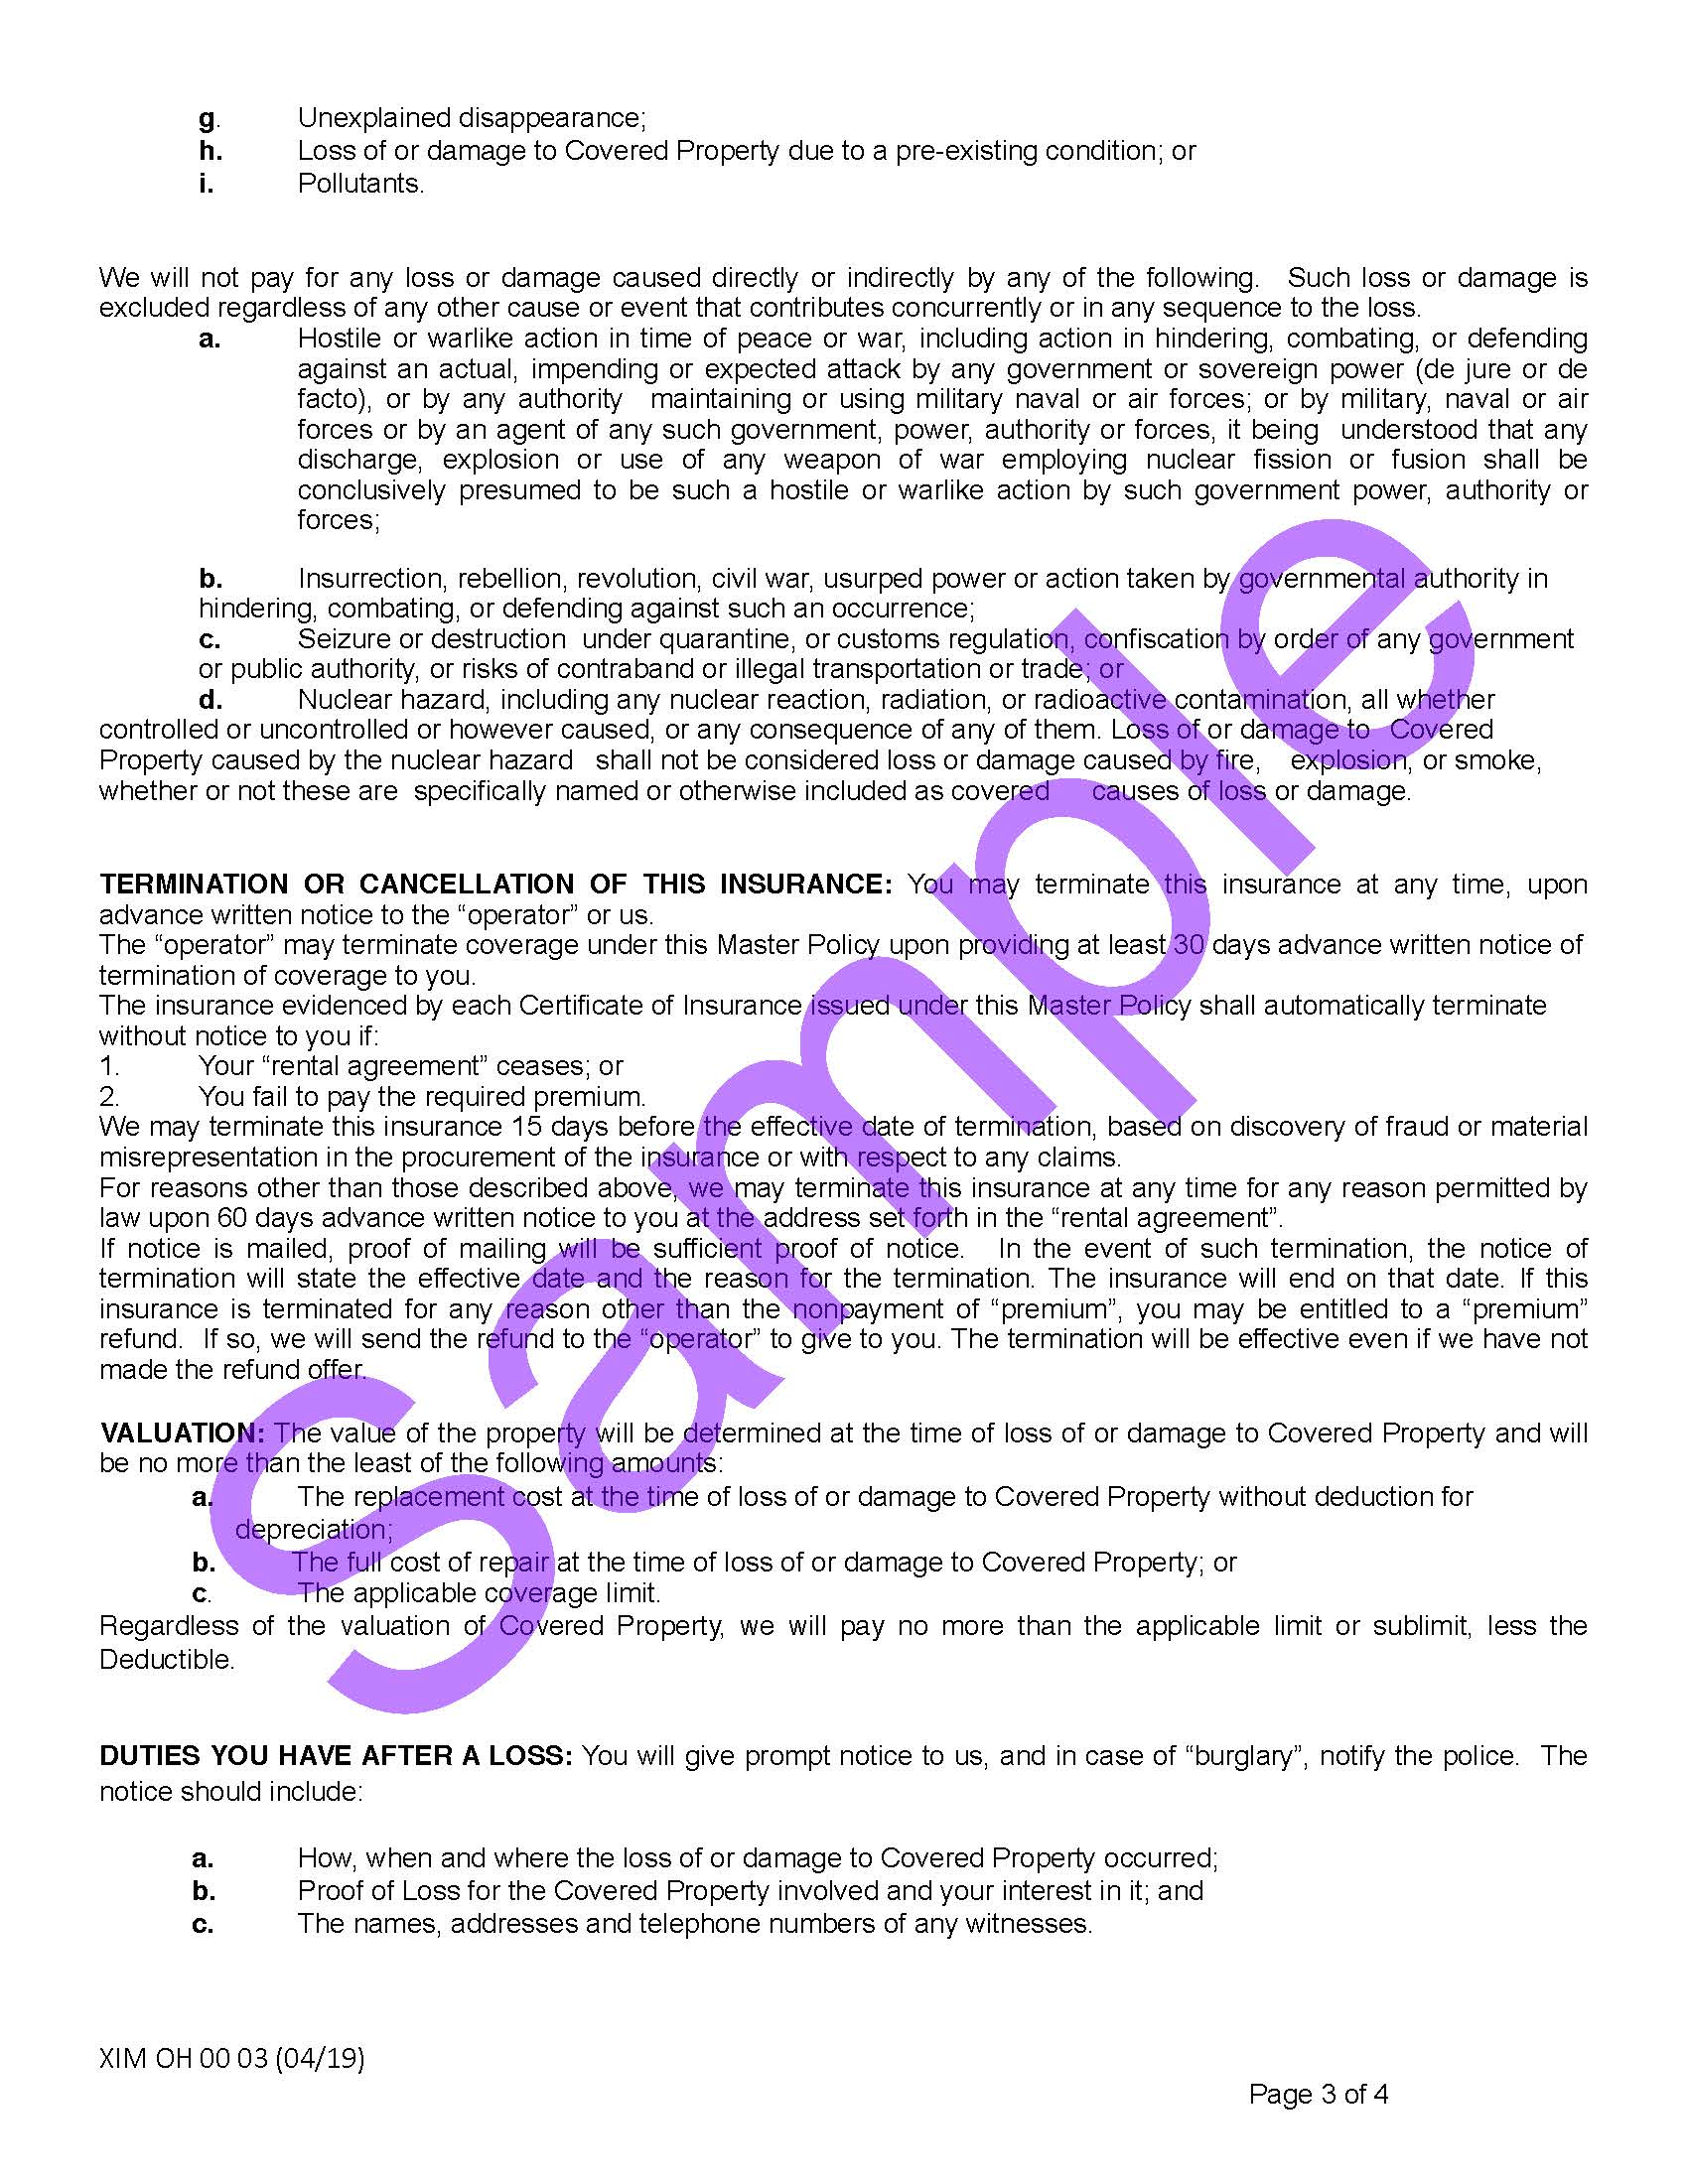 XIM OH 00 03 04 19 Ohio Certificate of InsuranceSample_Page_3.jpg